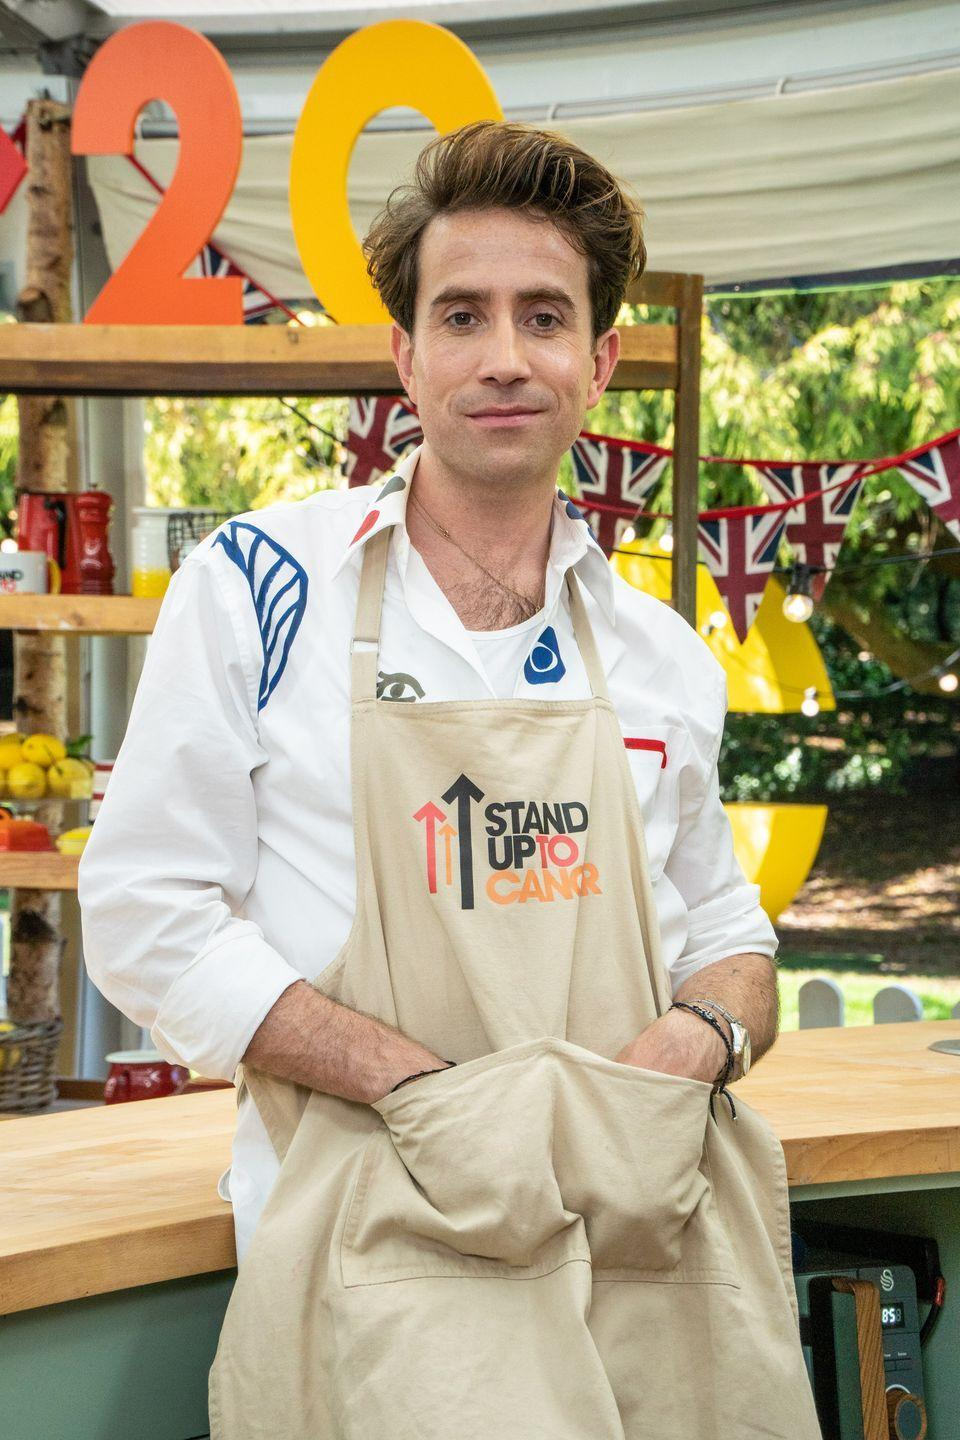 <p>Nick Grimshaw is a DJ and radio personality from BBC Radio 1.</p>